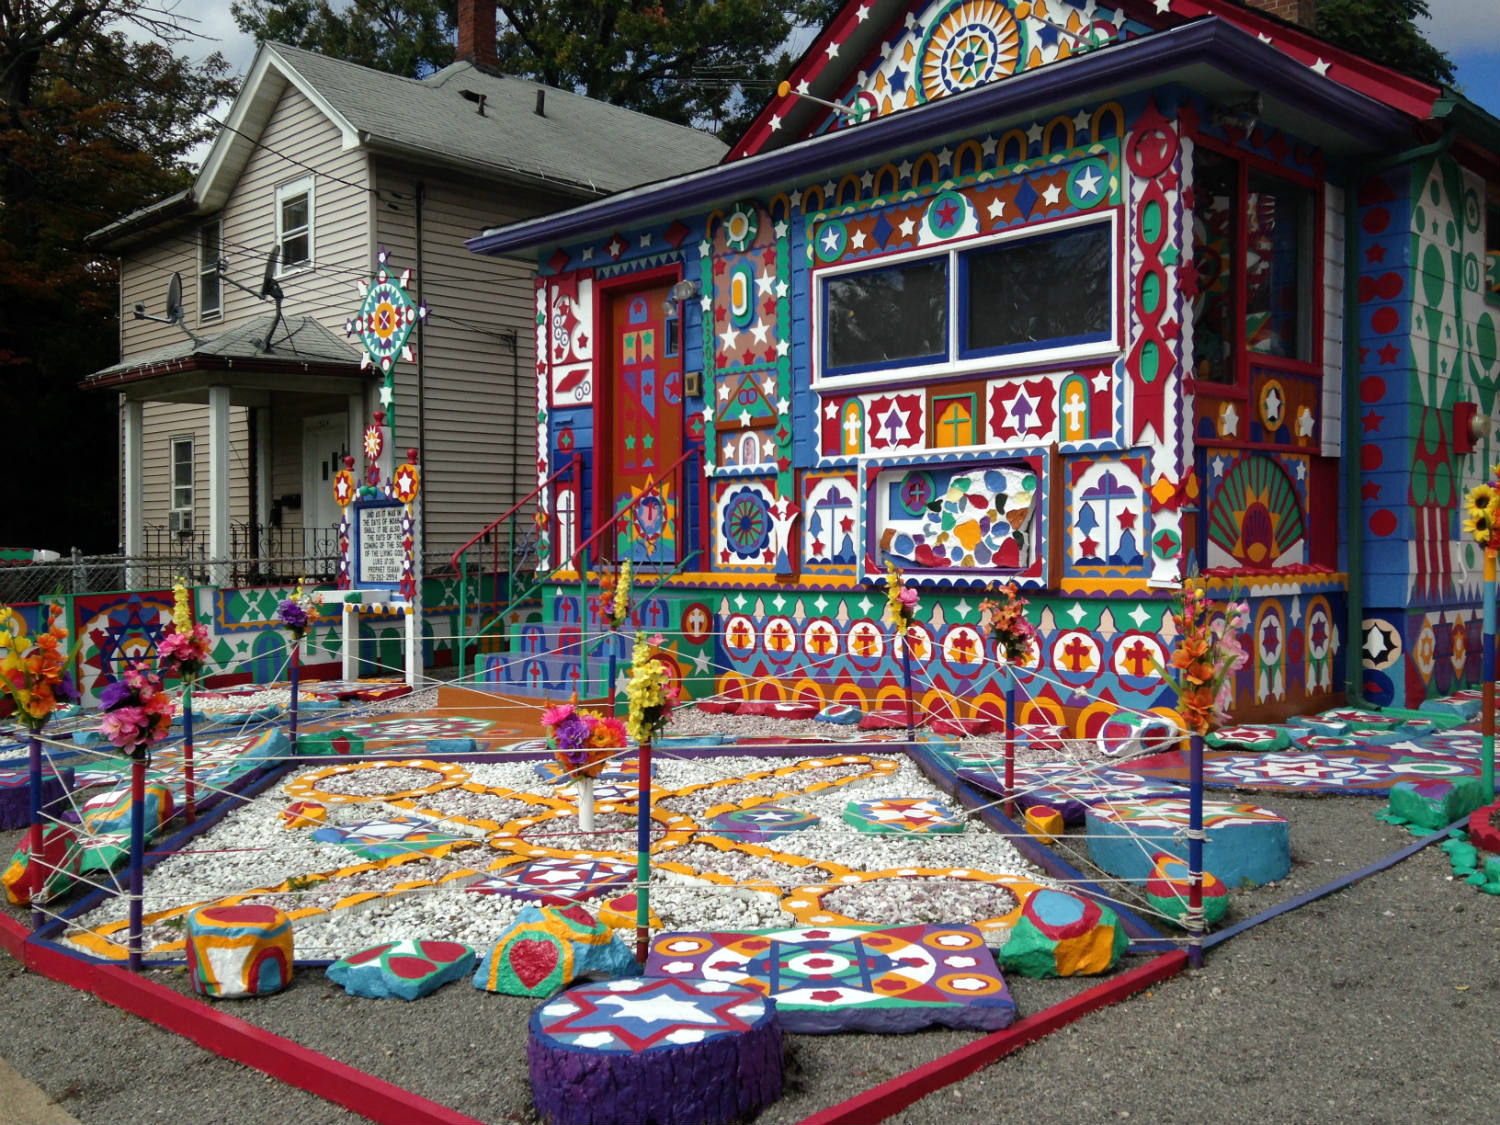 Front of Prophet Isaiah's Second Coming House in Niagara Falls, New York